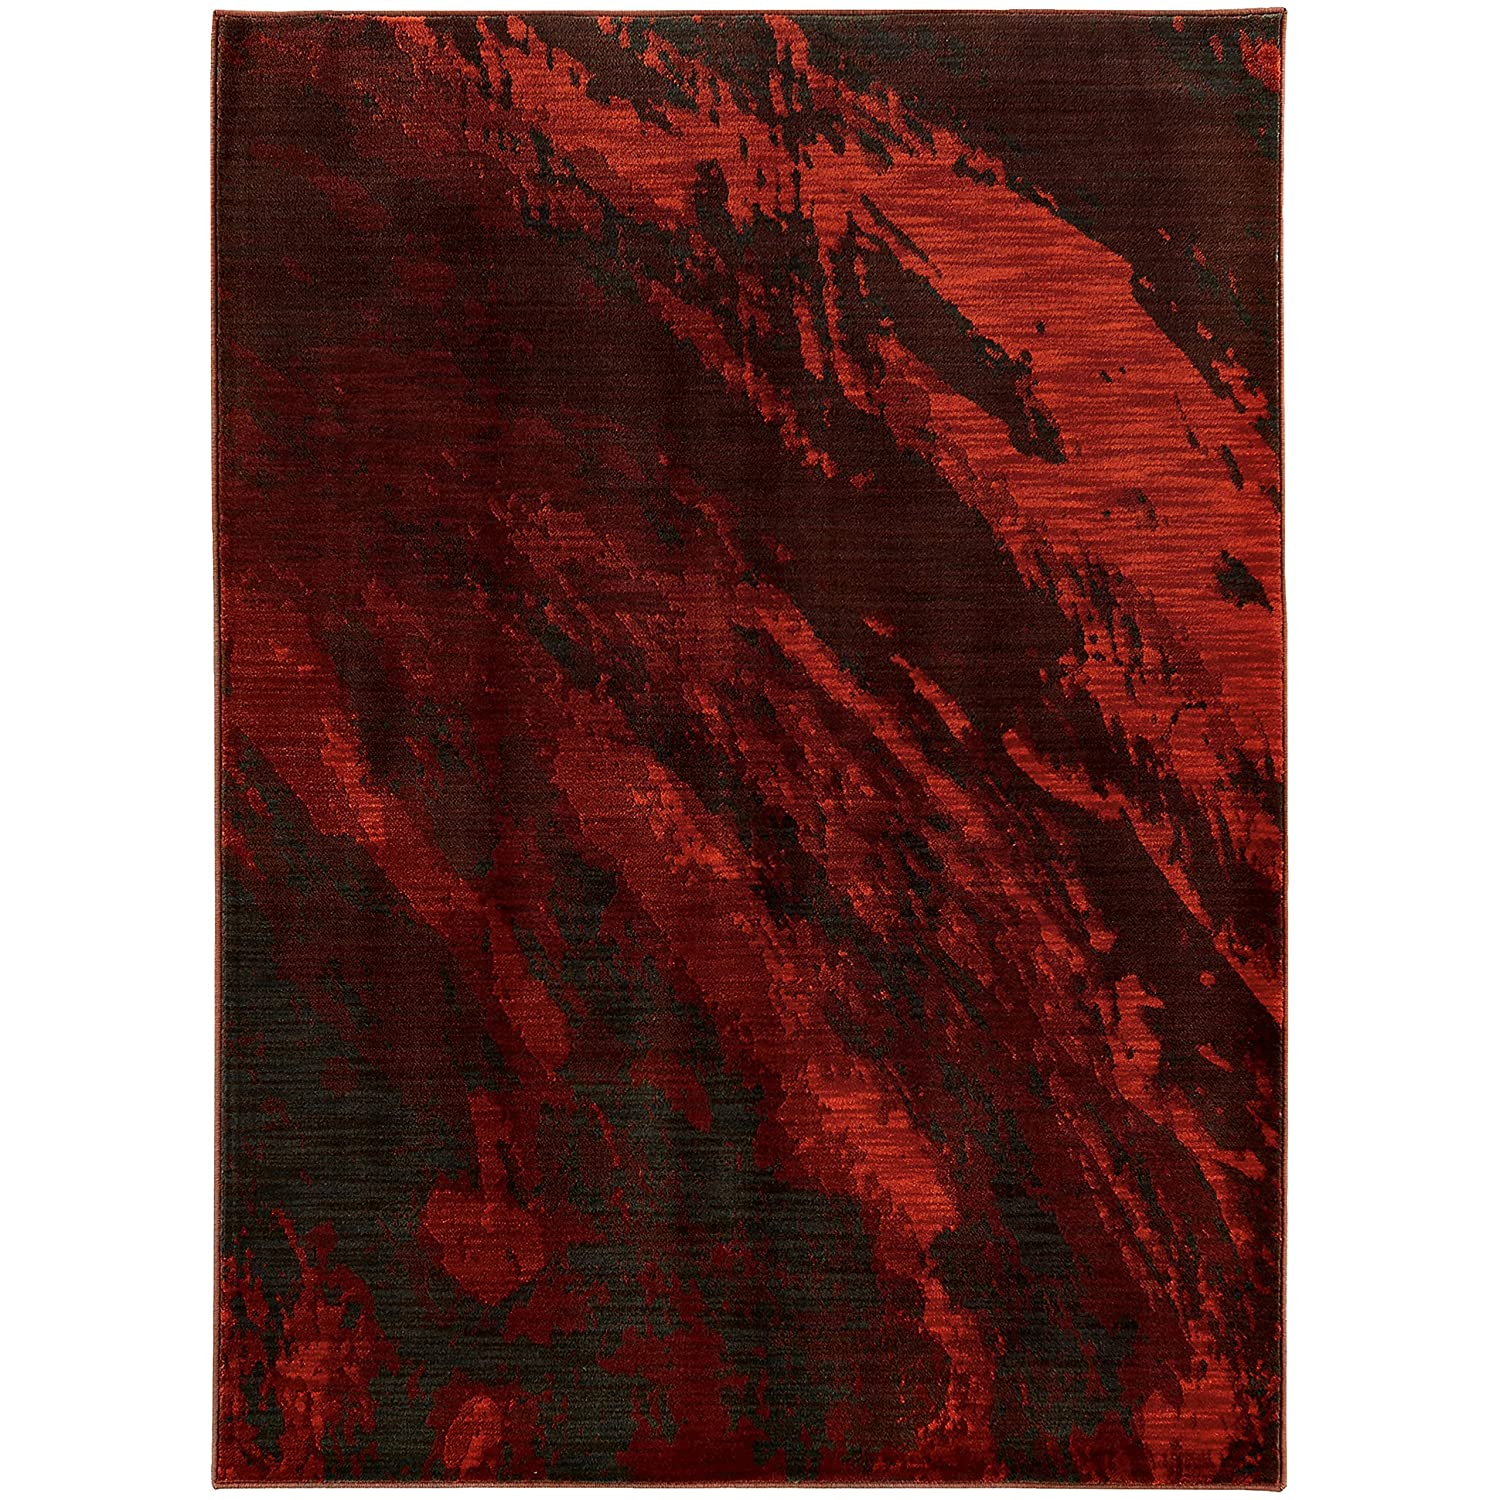 Christopher Knight Home CK-B7636 Sienna Abstract Indoor Area Rug 7ft 10in X 10ft 10in Red,Grey